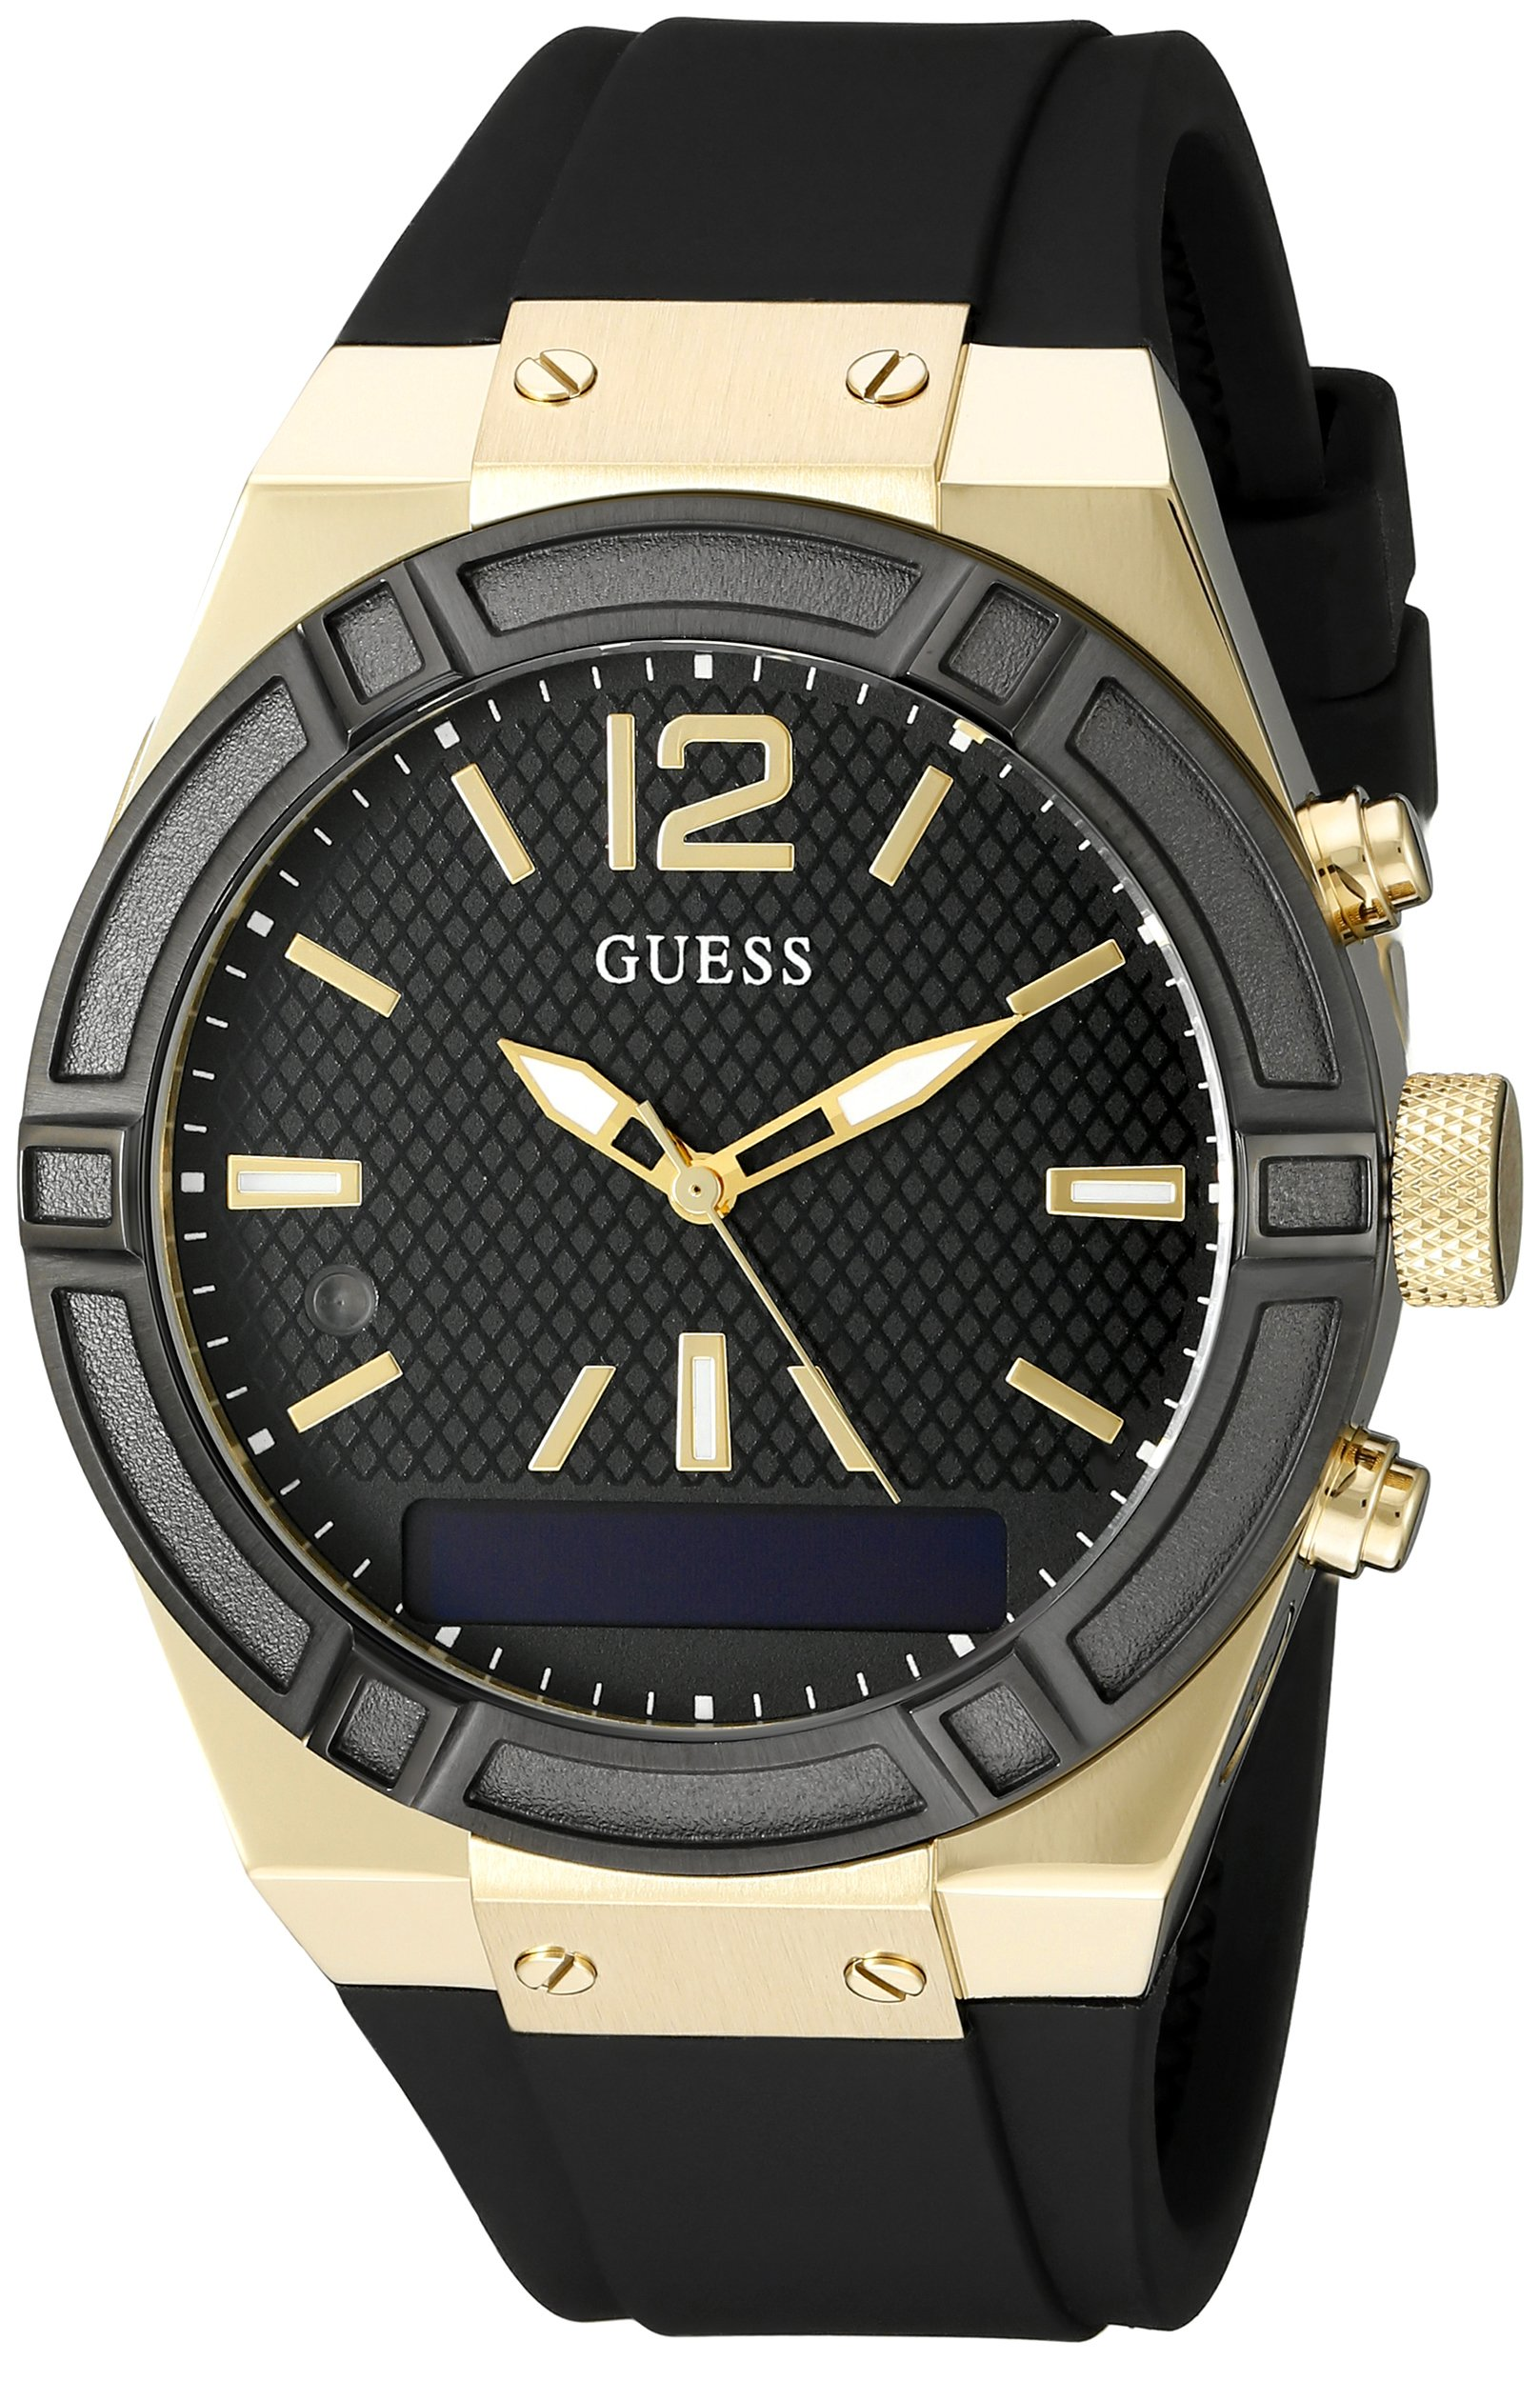 GUESS Women's CONNECT Smartwatch with Amazon Alexa and Silicone Strap Buckle - iOS and Android Compatible -  Black by GUESS